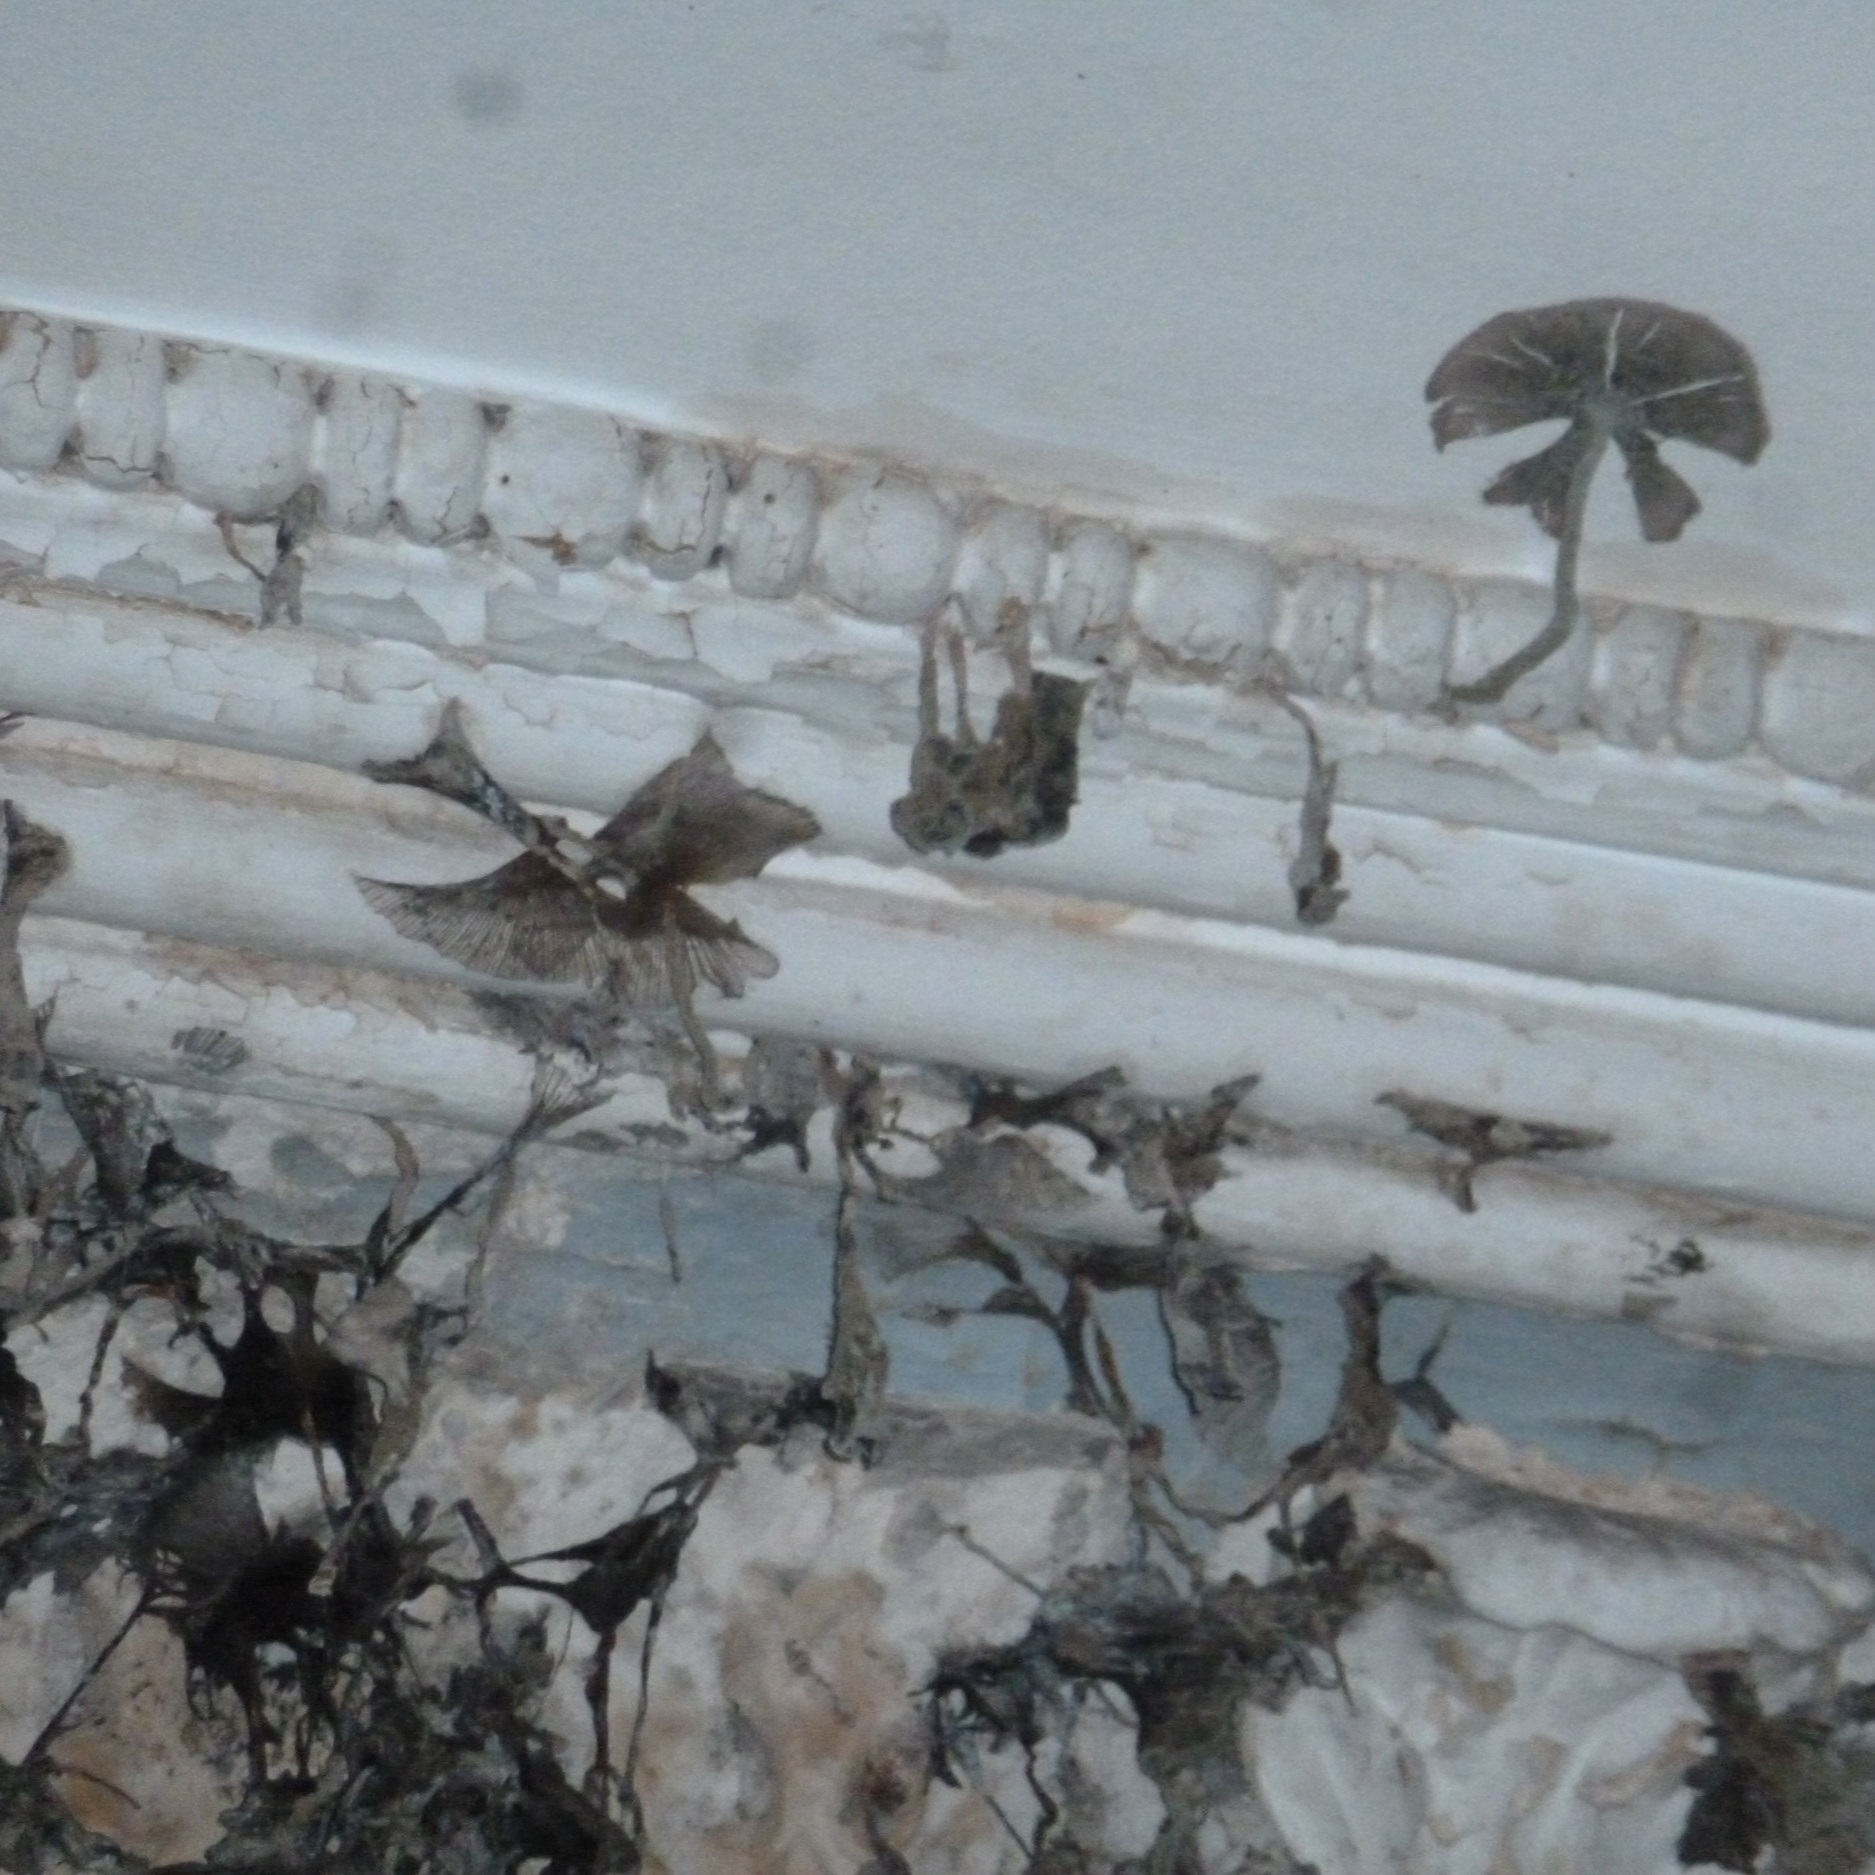 Ink Cap fungus, over principal stair. Ink cap fungus does not attack structural members but concentrates on lath work effecting the condition of the plaster ceiling